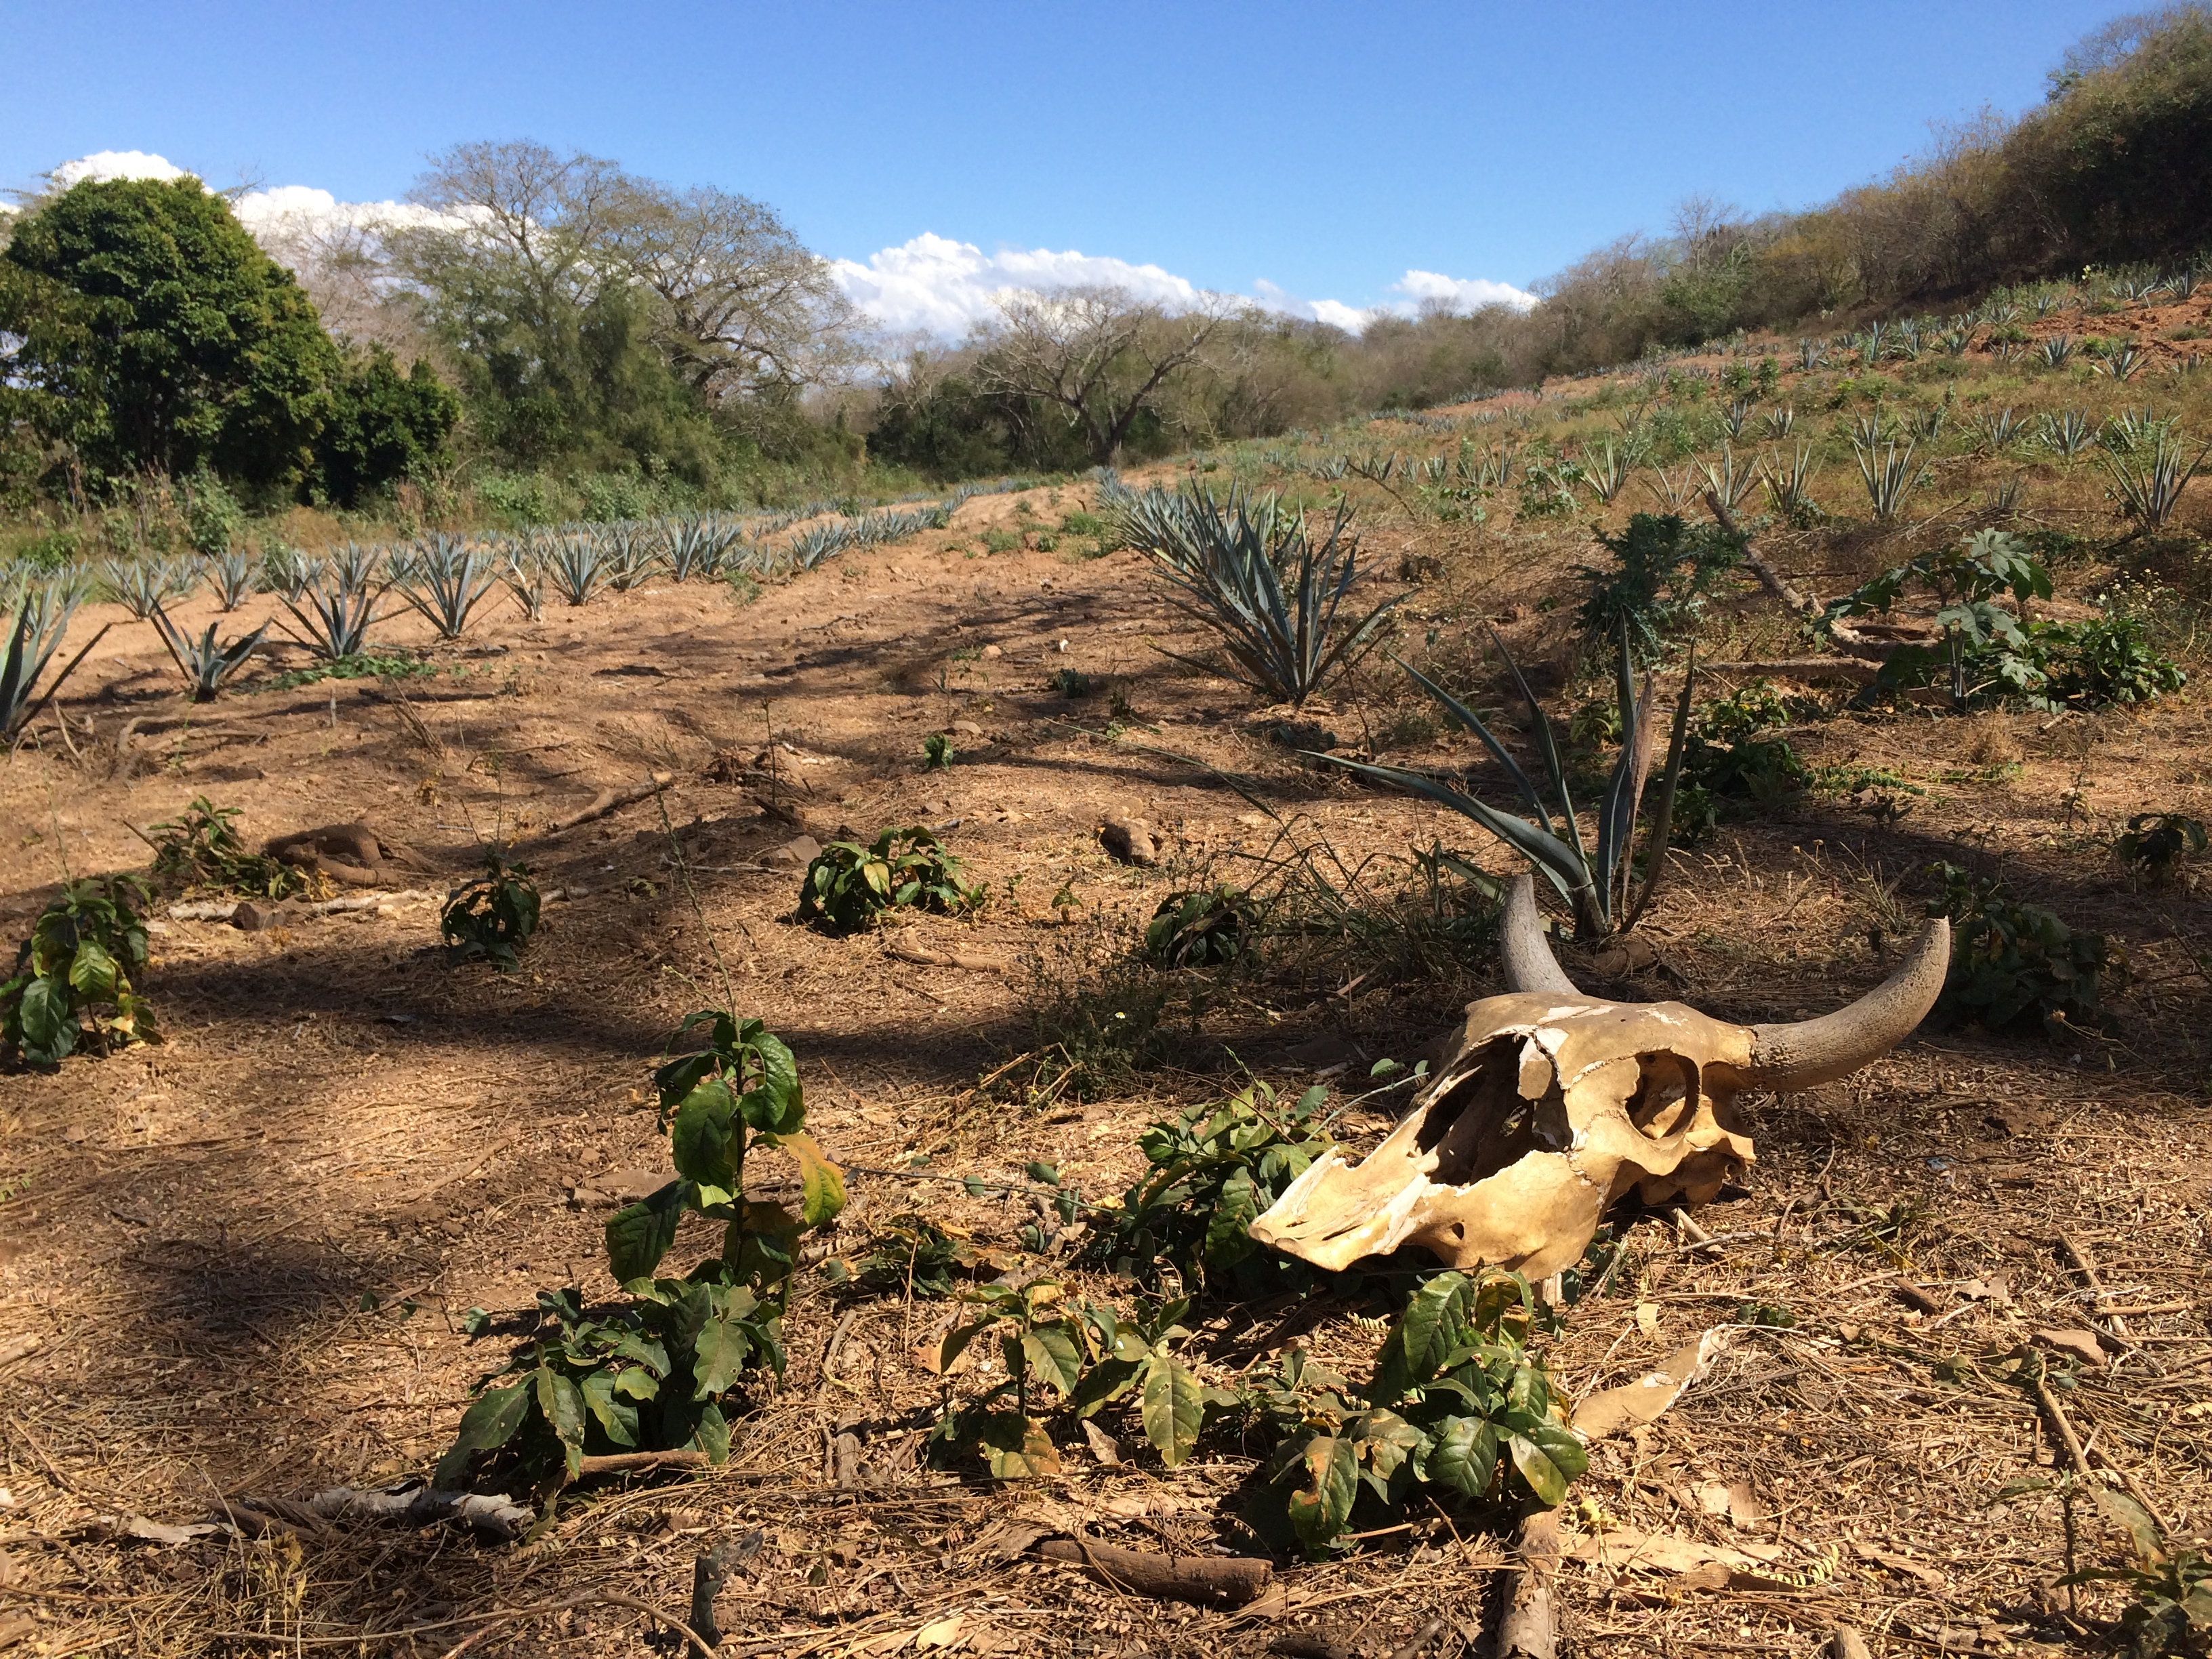 Agave plants grow near La Hacienda Los Osuna.